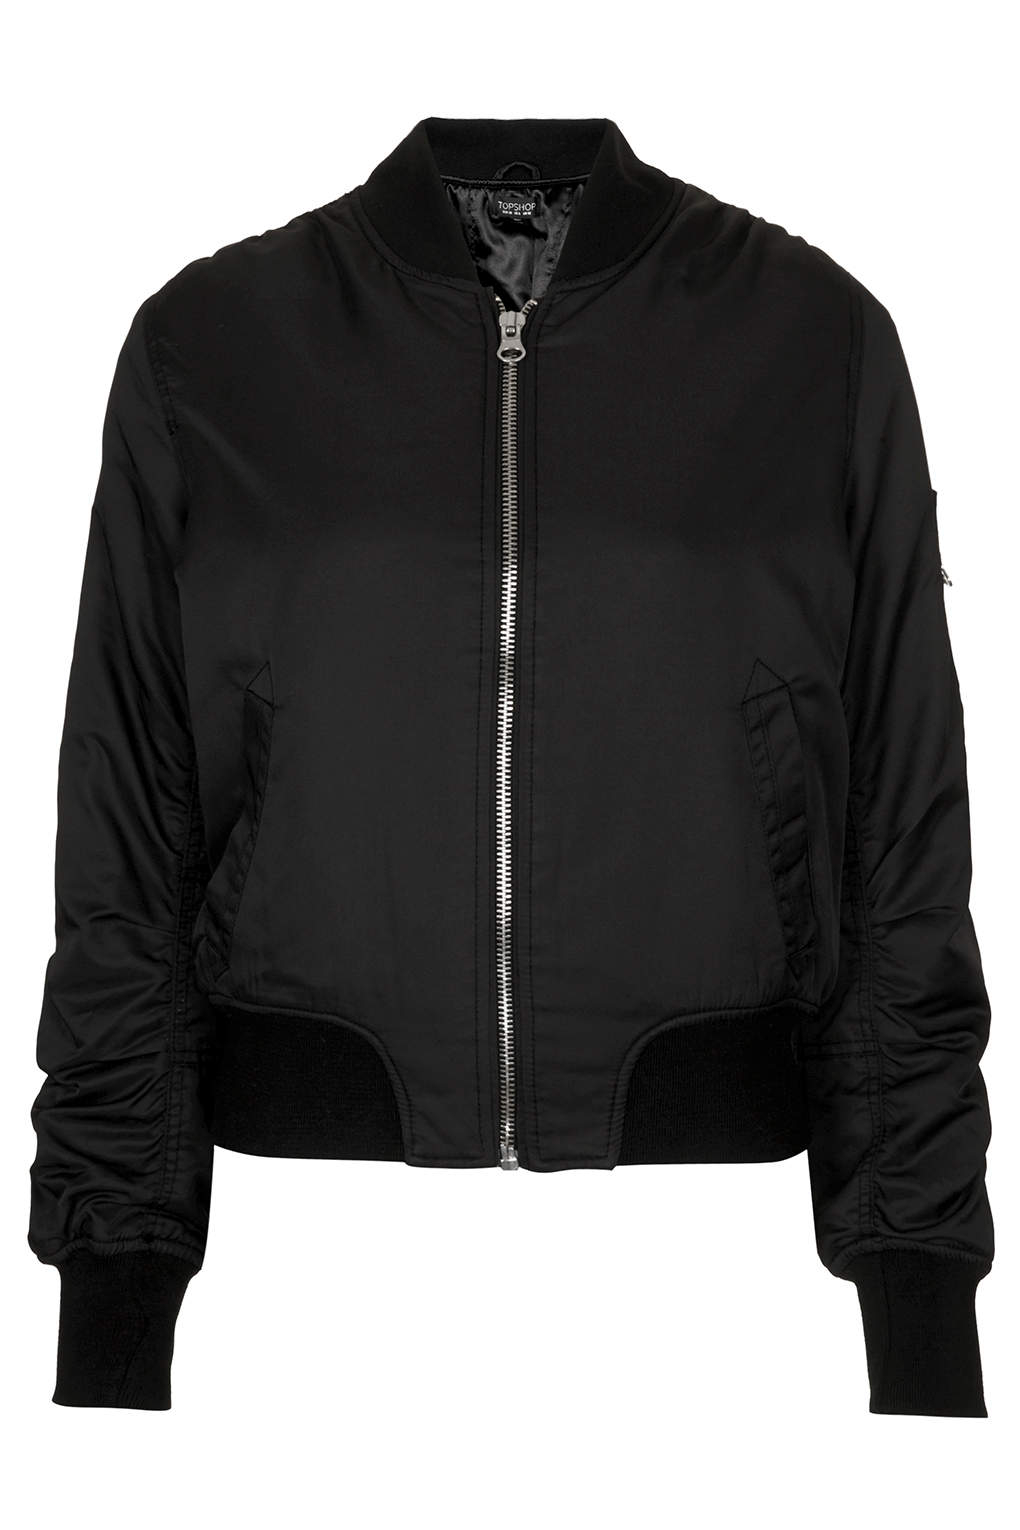 Free shipping and returns on bomber jackets for women at sofltappreciate.tk Shop the latest bomber jacket styles from the best brands. Check out our entire collection.